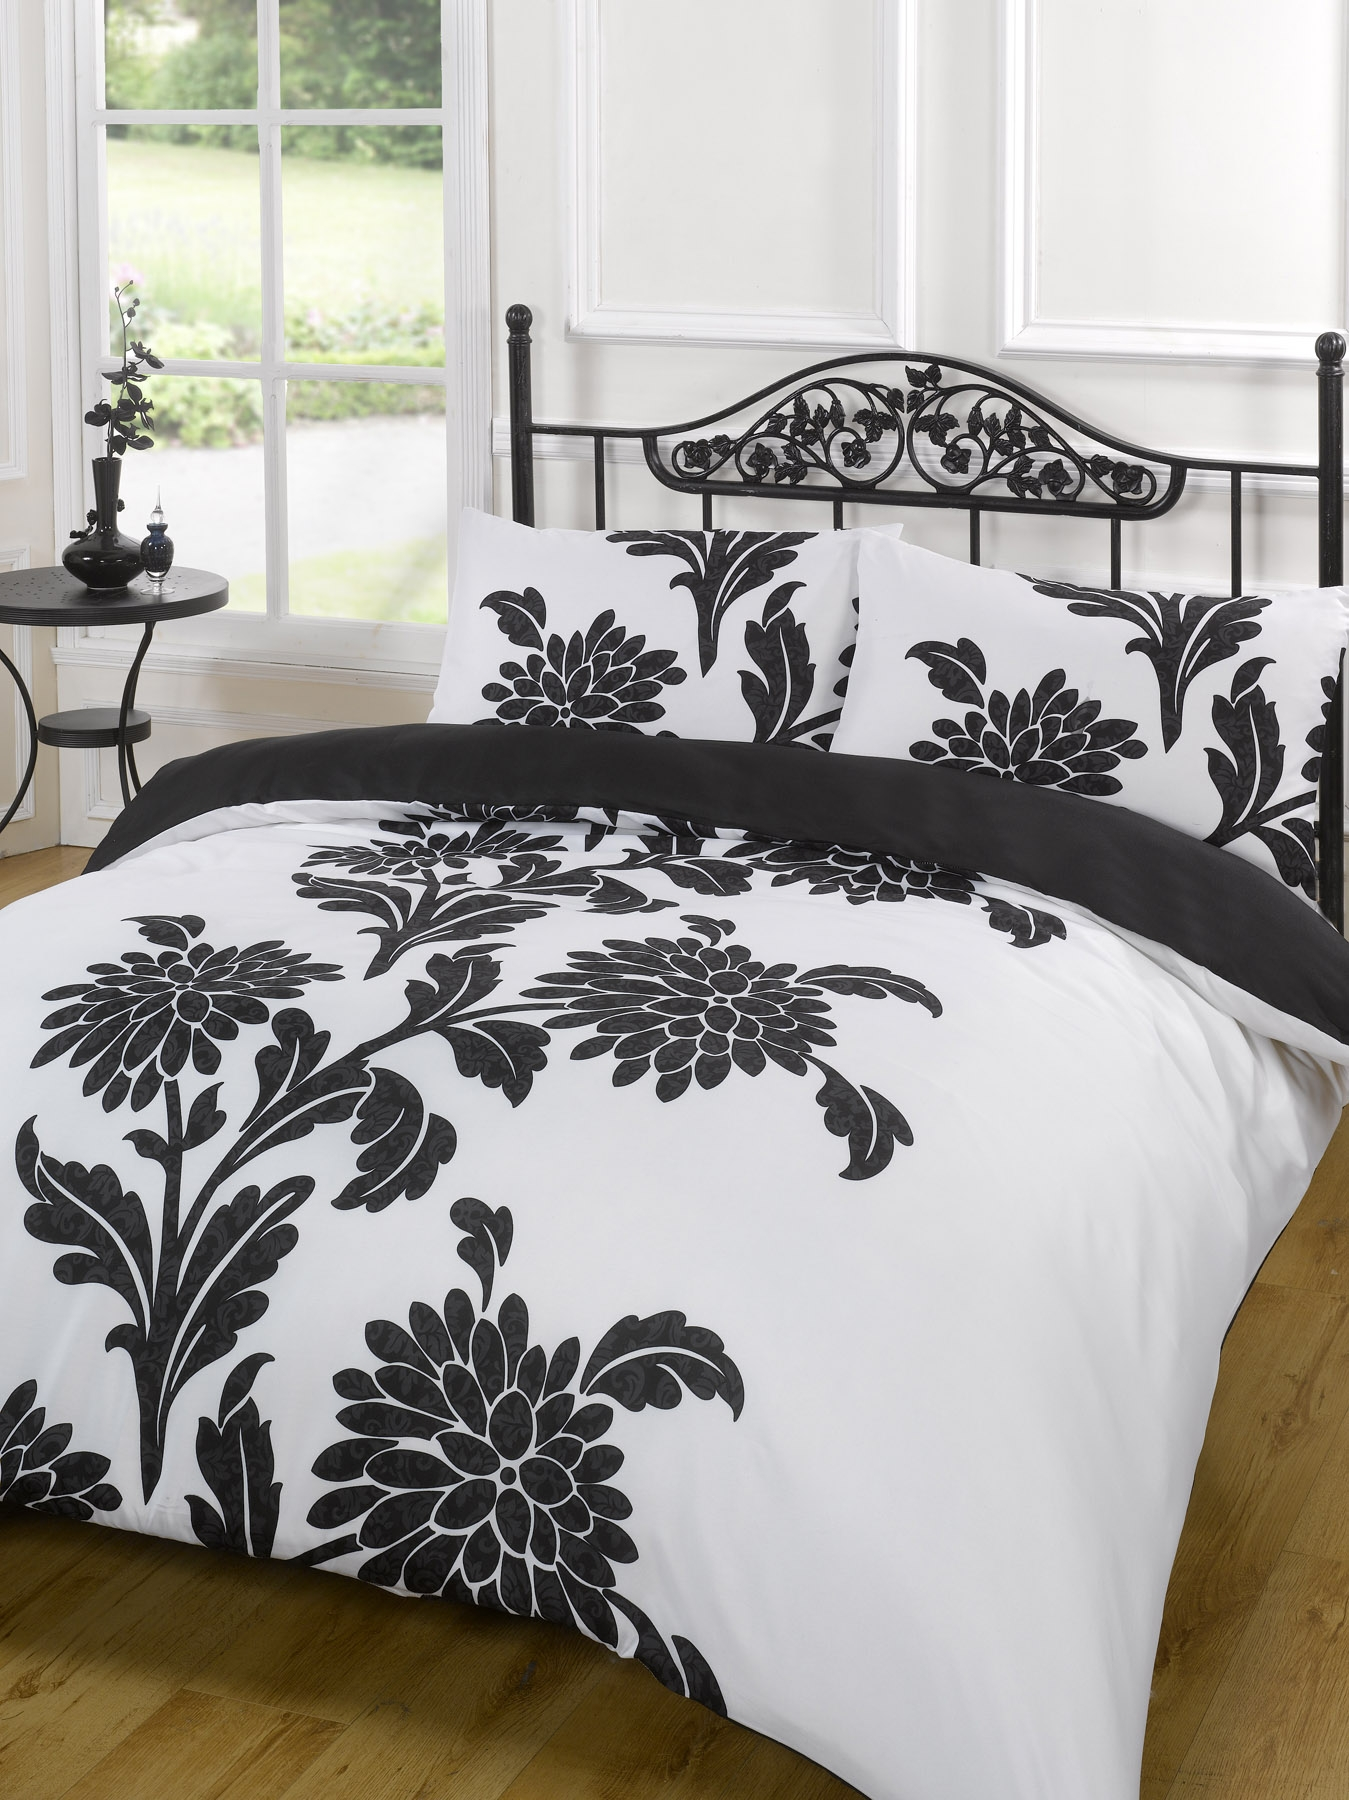 Duvet Quilt Cover Bedding Set Black White Single Double